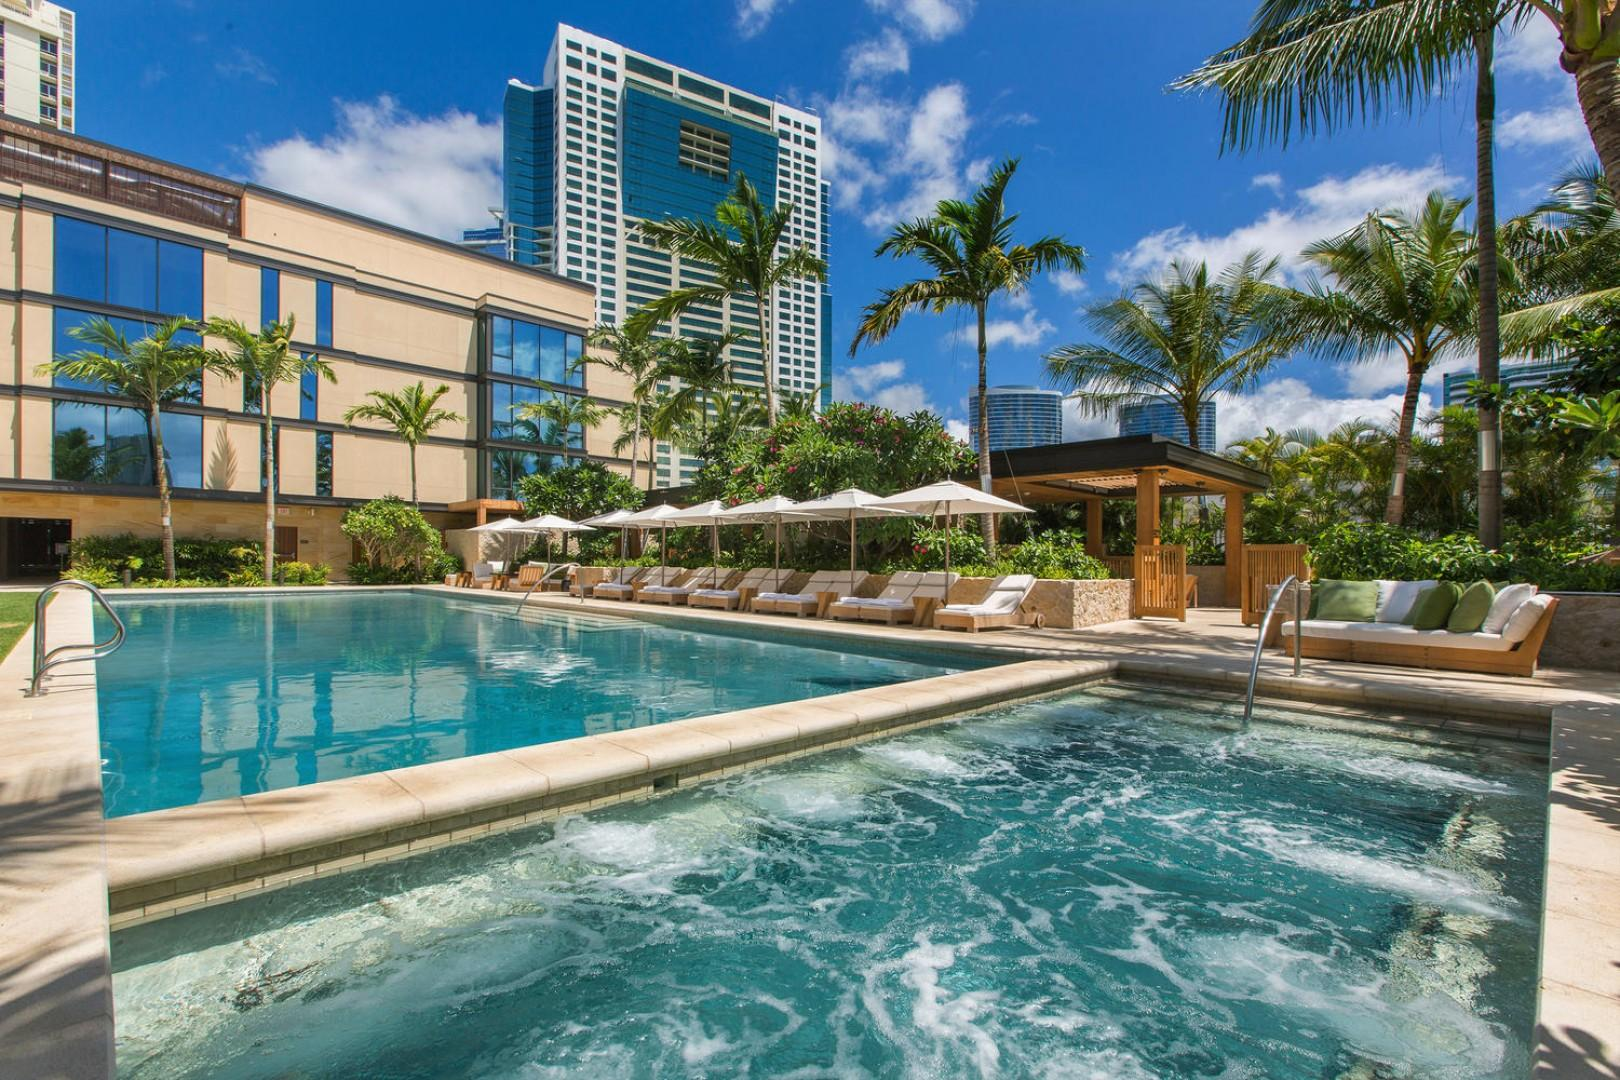 Shared Jacuzzi and Pool